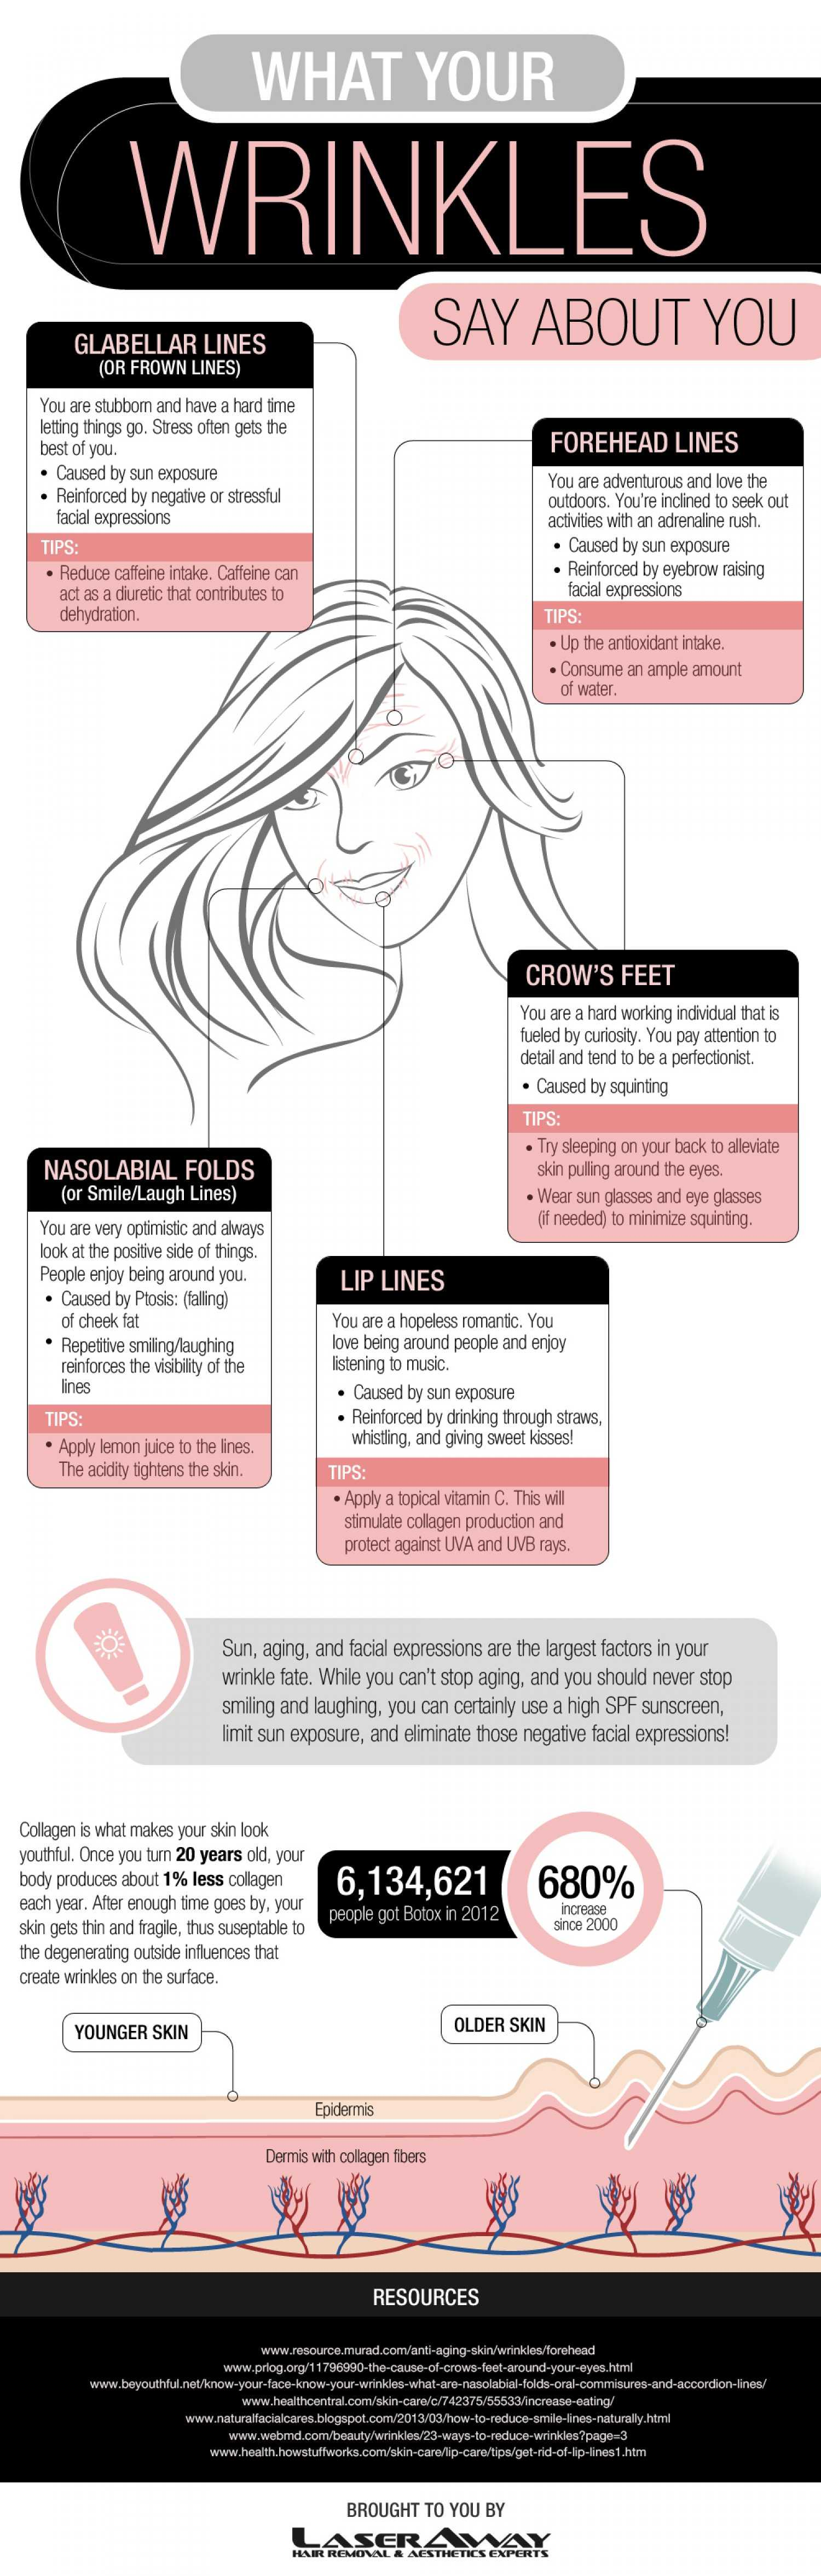 What Your Wrinkles Say About You